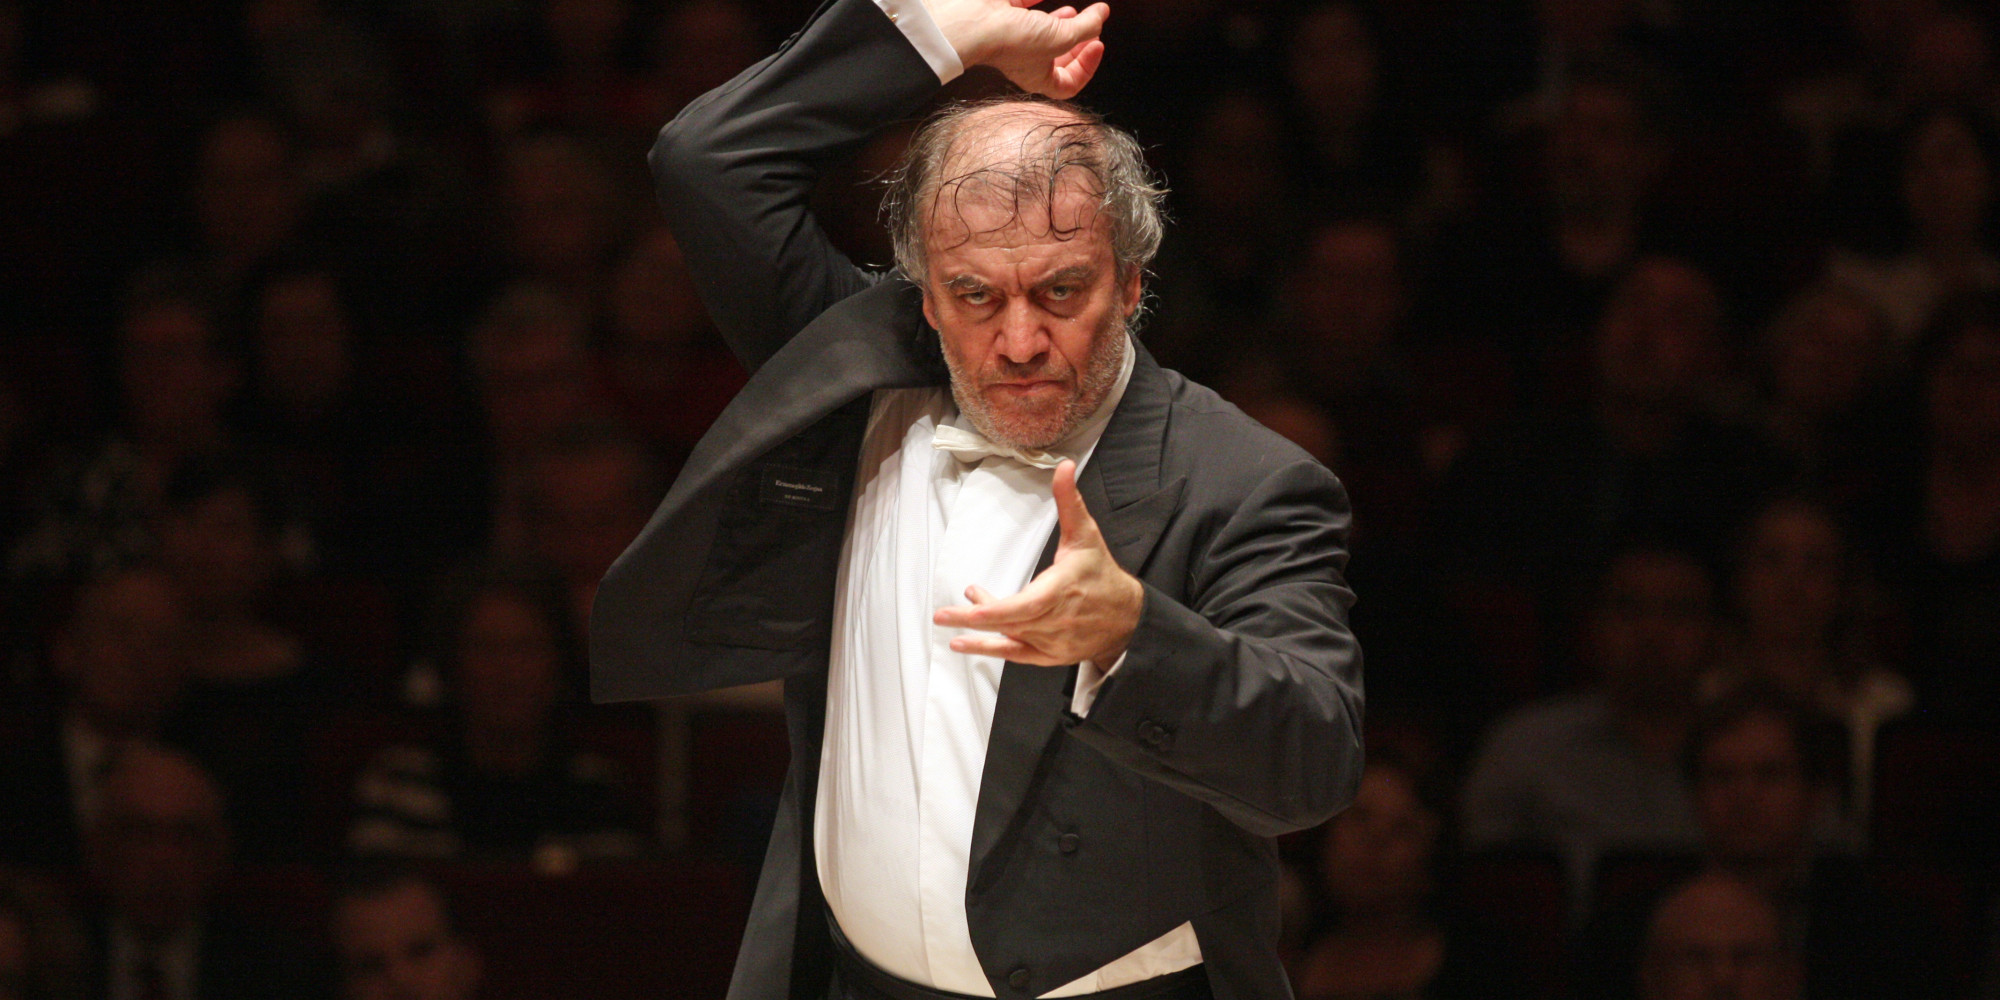 Valery Gergiev Faces The Music Over Support For Russian